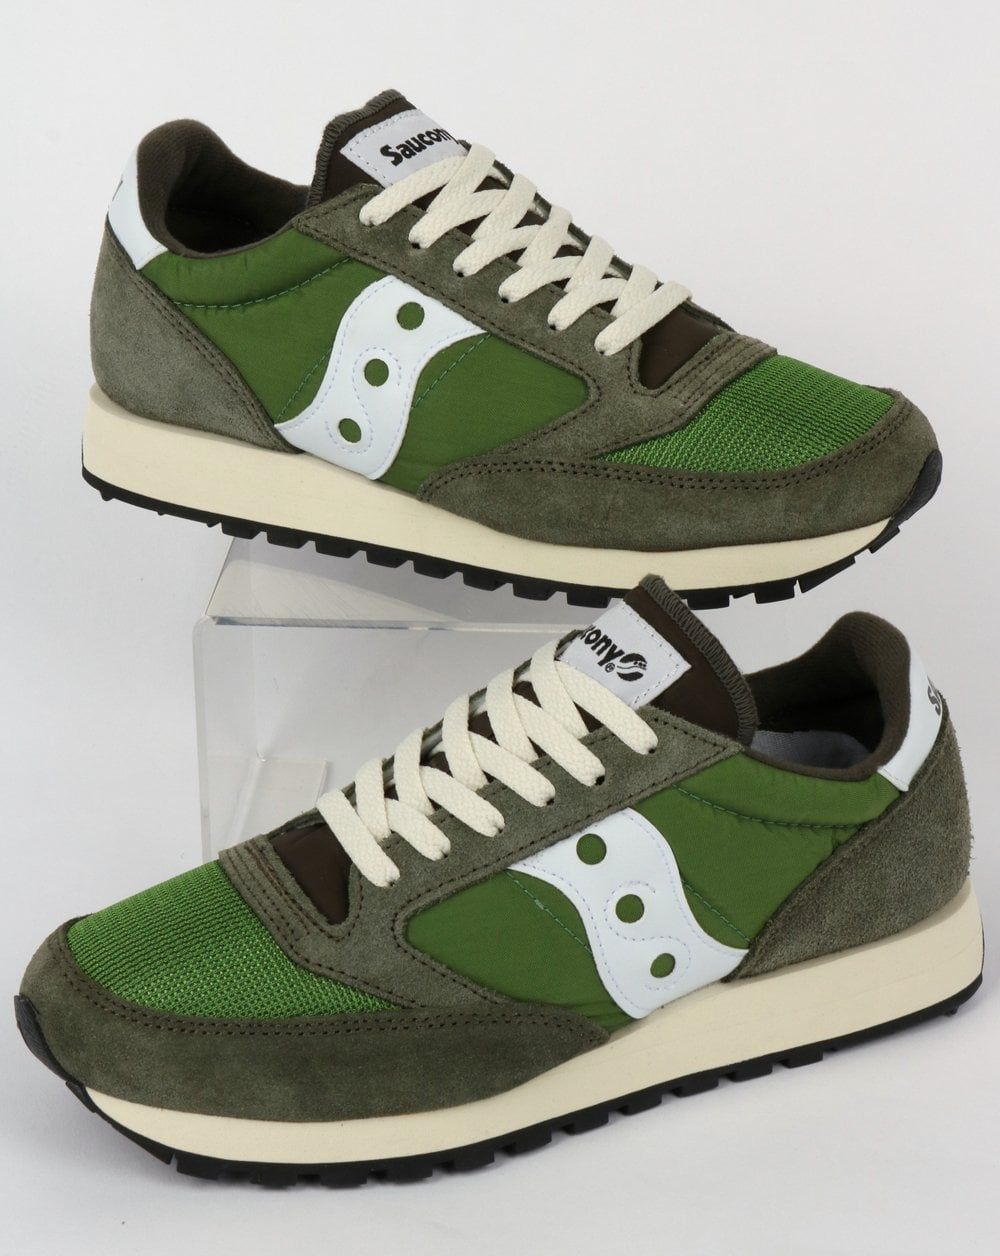 fff3d48d70 Saucony Jazz Original Vintage Trainers Green,runners,shoes,80s,mens